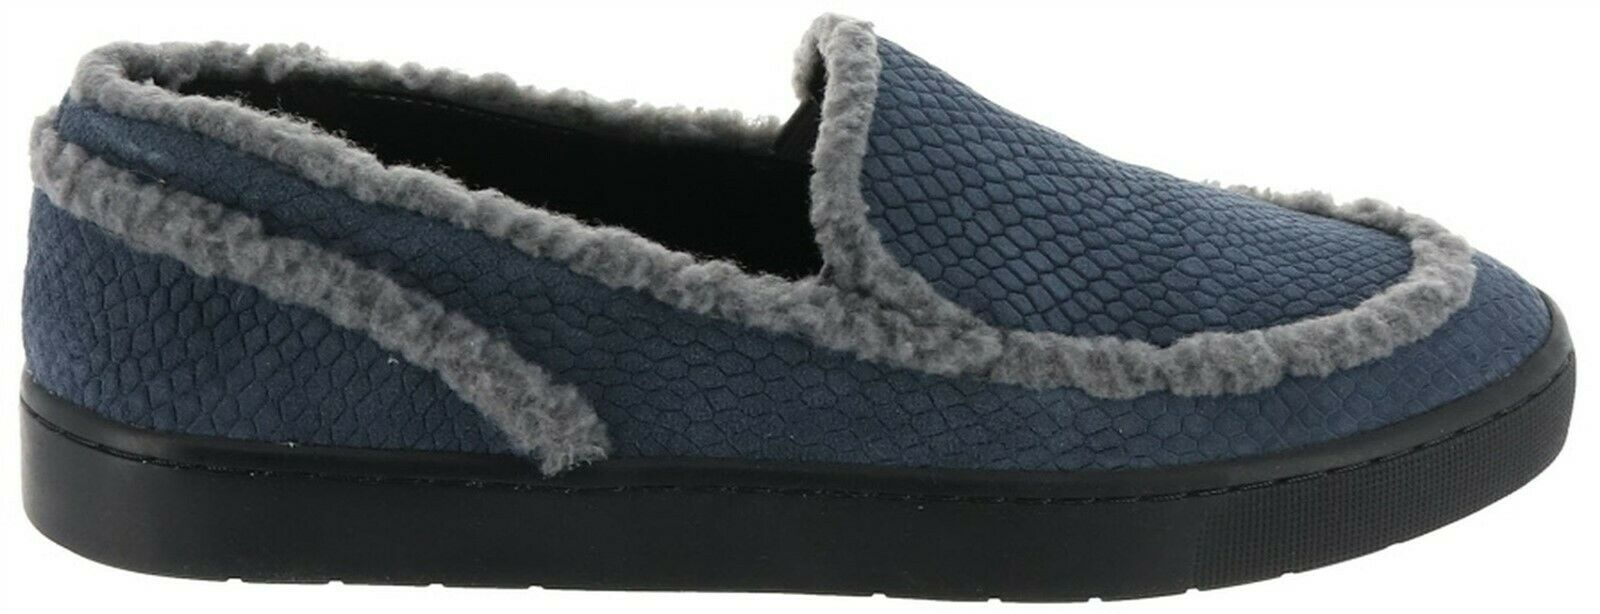 Primary image for LOGO Lori Goldstein Slip On Loafers Shearling Trim GreyBlueSnake 6M NEW A284139